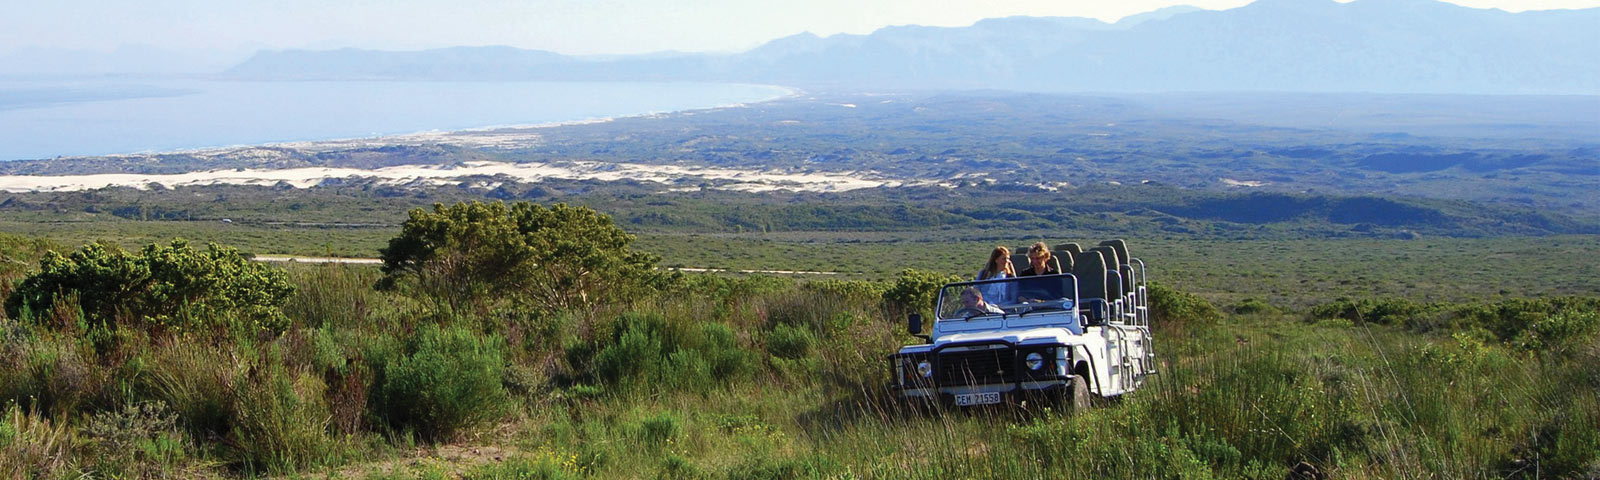 South Africa - Cape Town, Cape Winelands and Safari